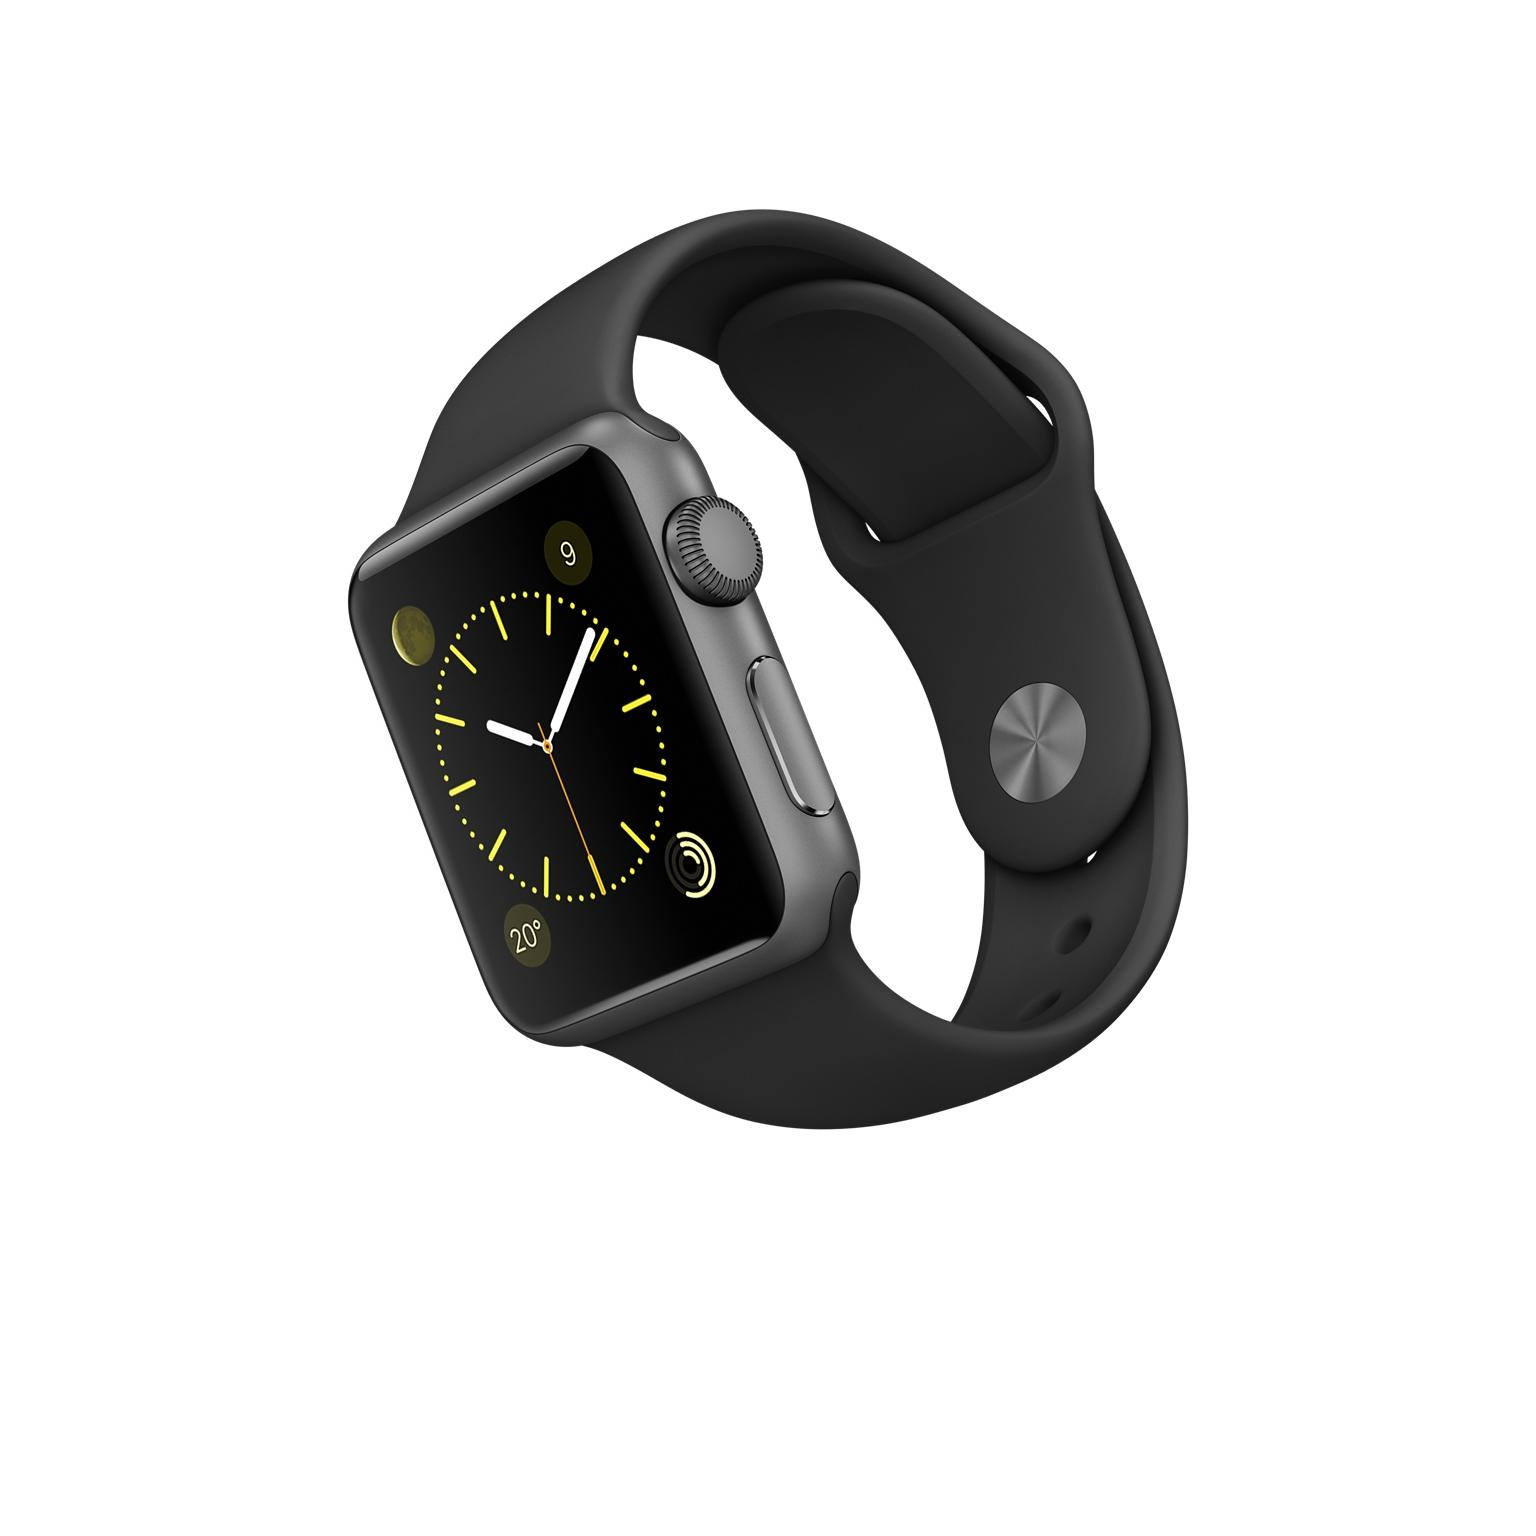 Apple Watch (Series 1) 38 mm - Aluminium Gris sidéral - Bracelet Sport noir